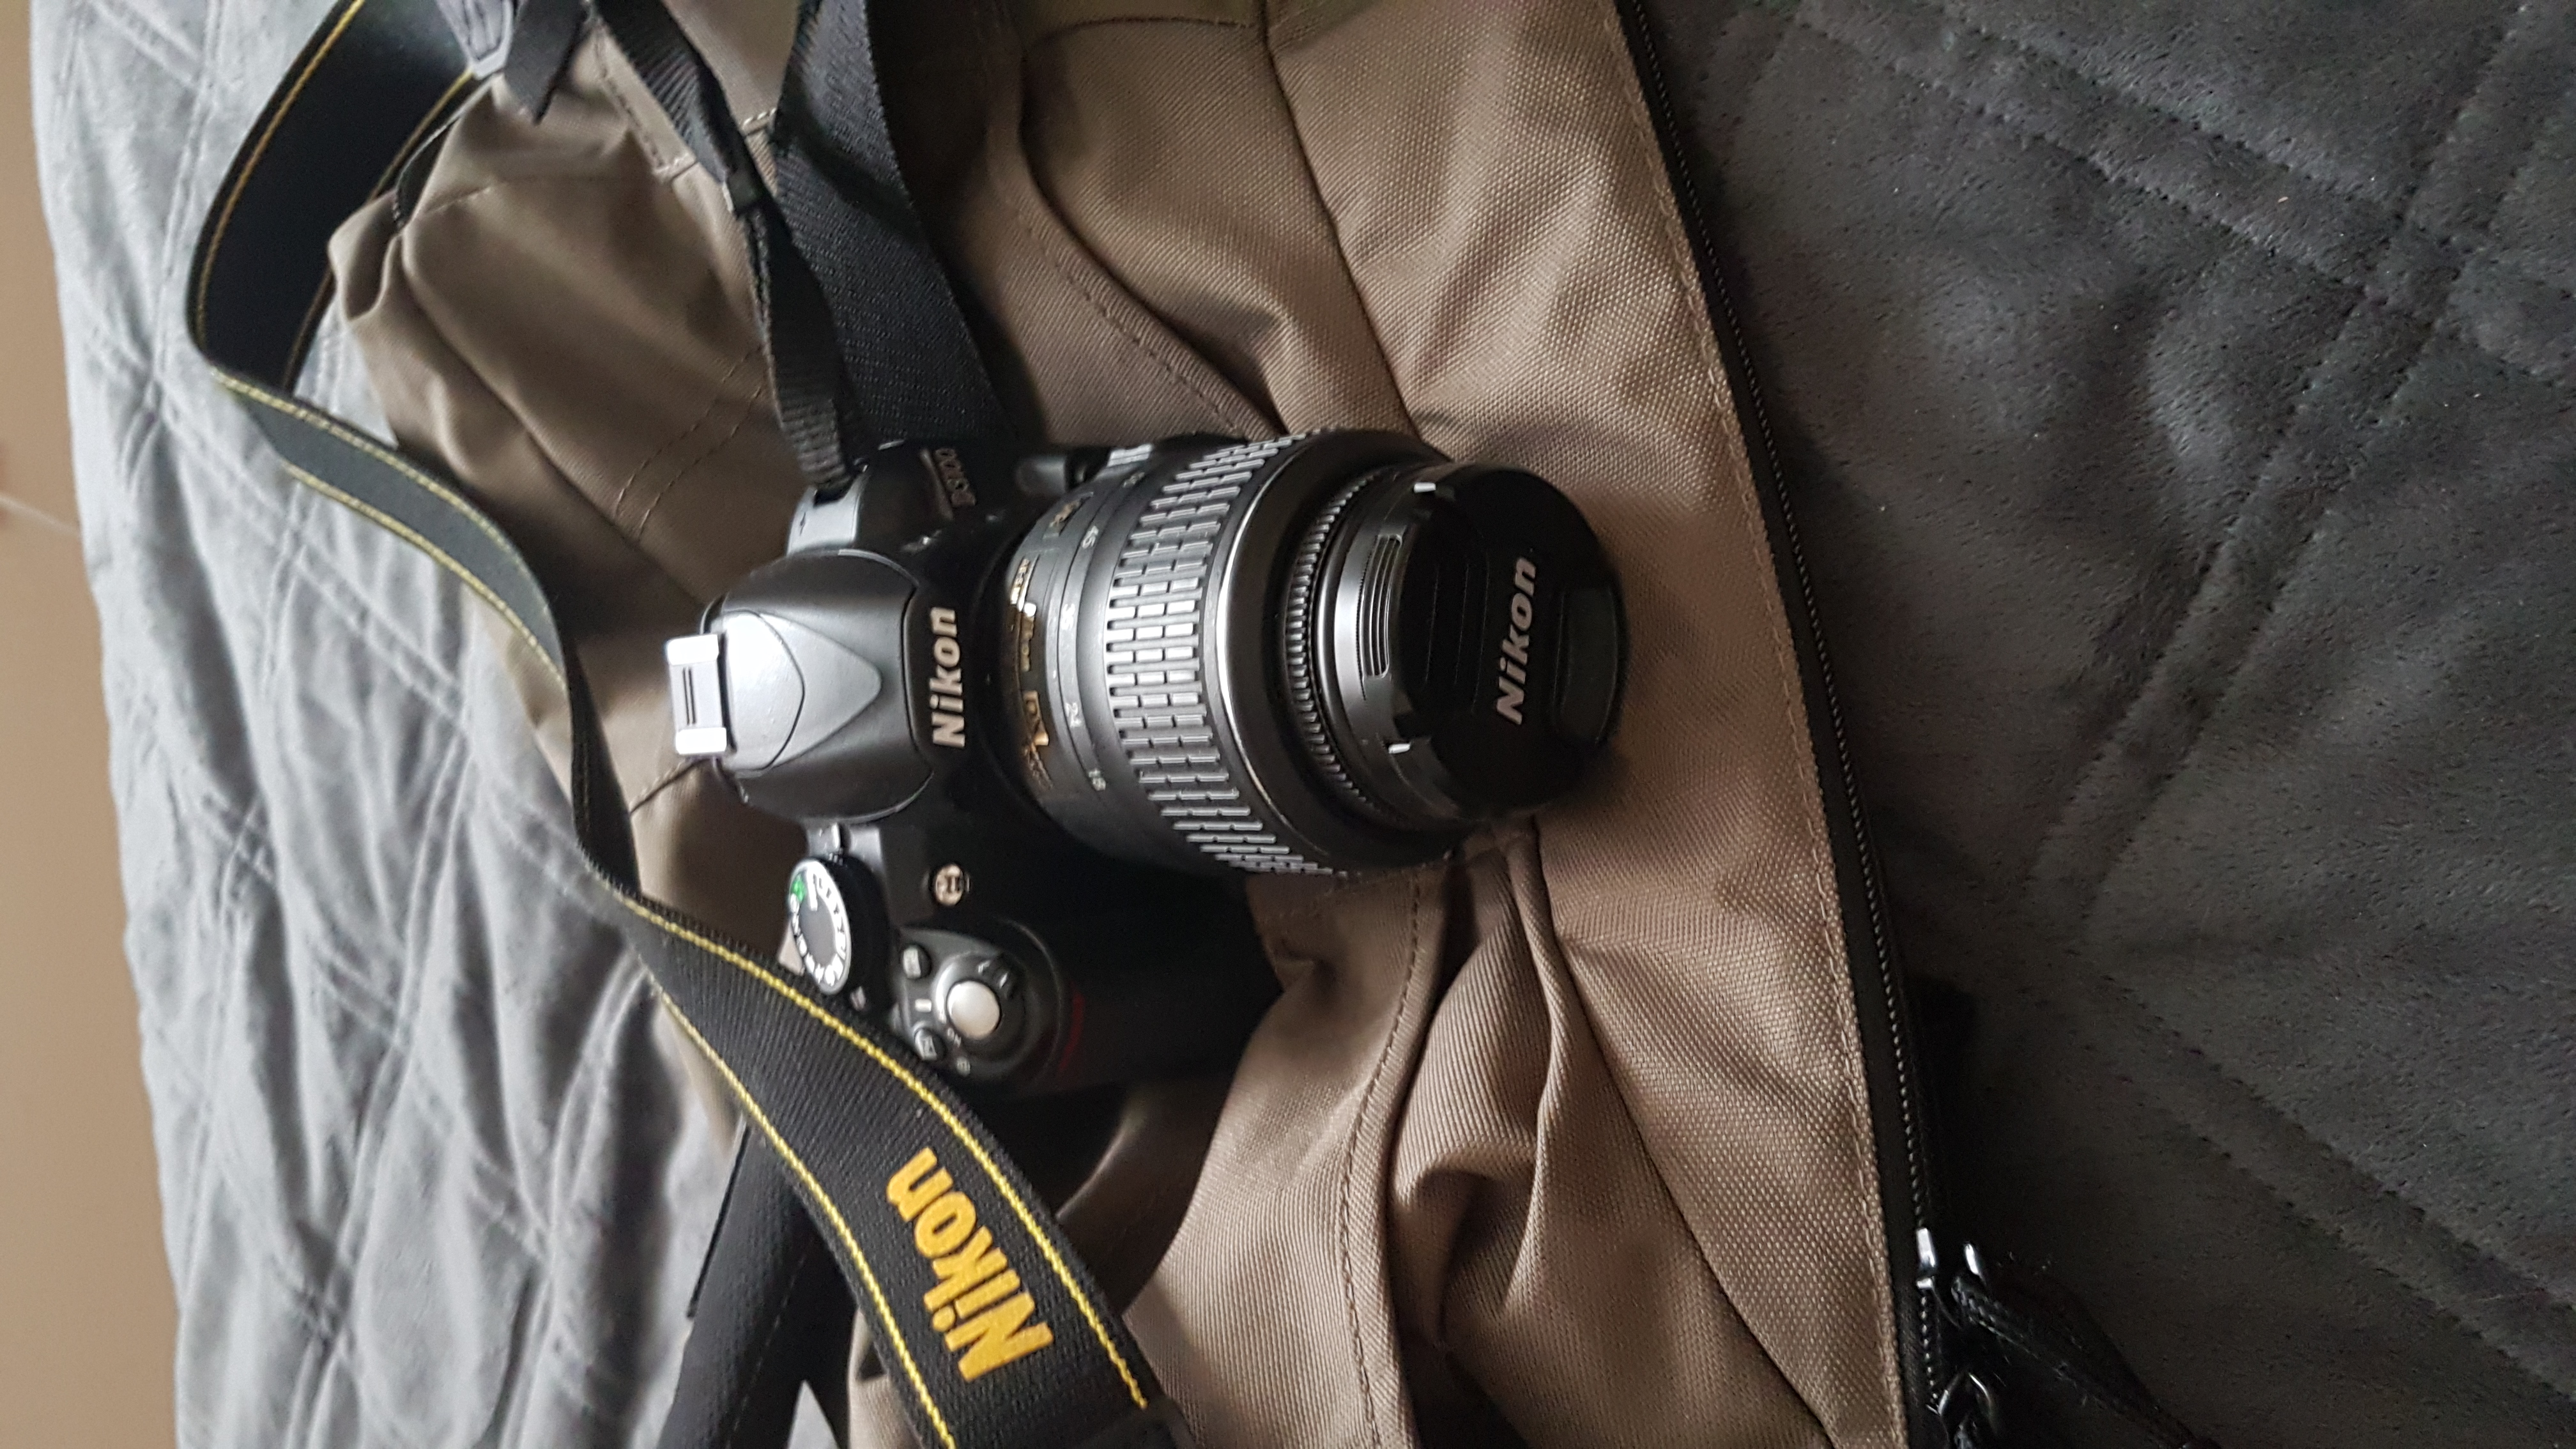 NikonD3100 with 18-55mm lens and camera Bag